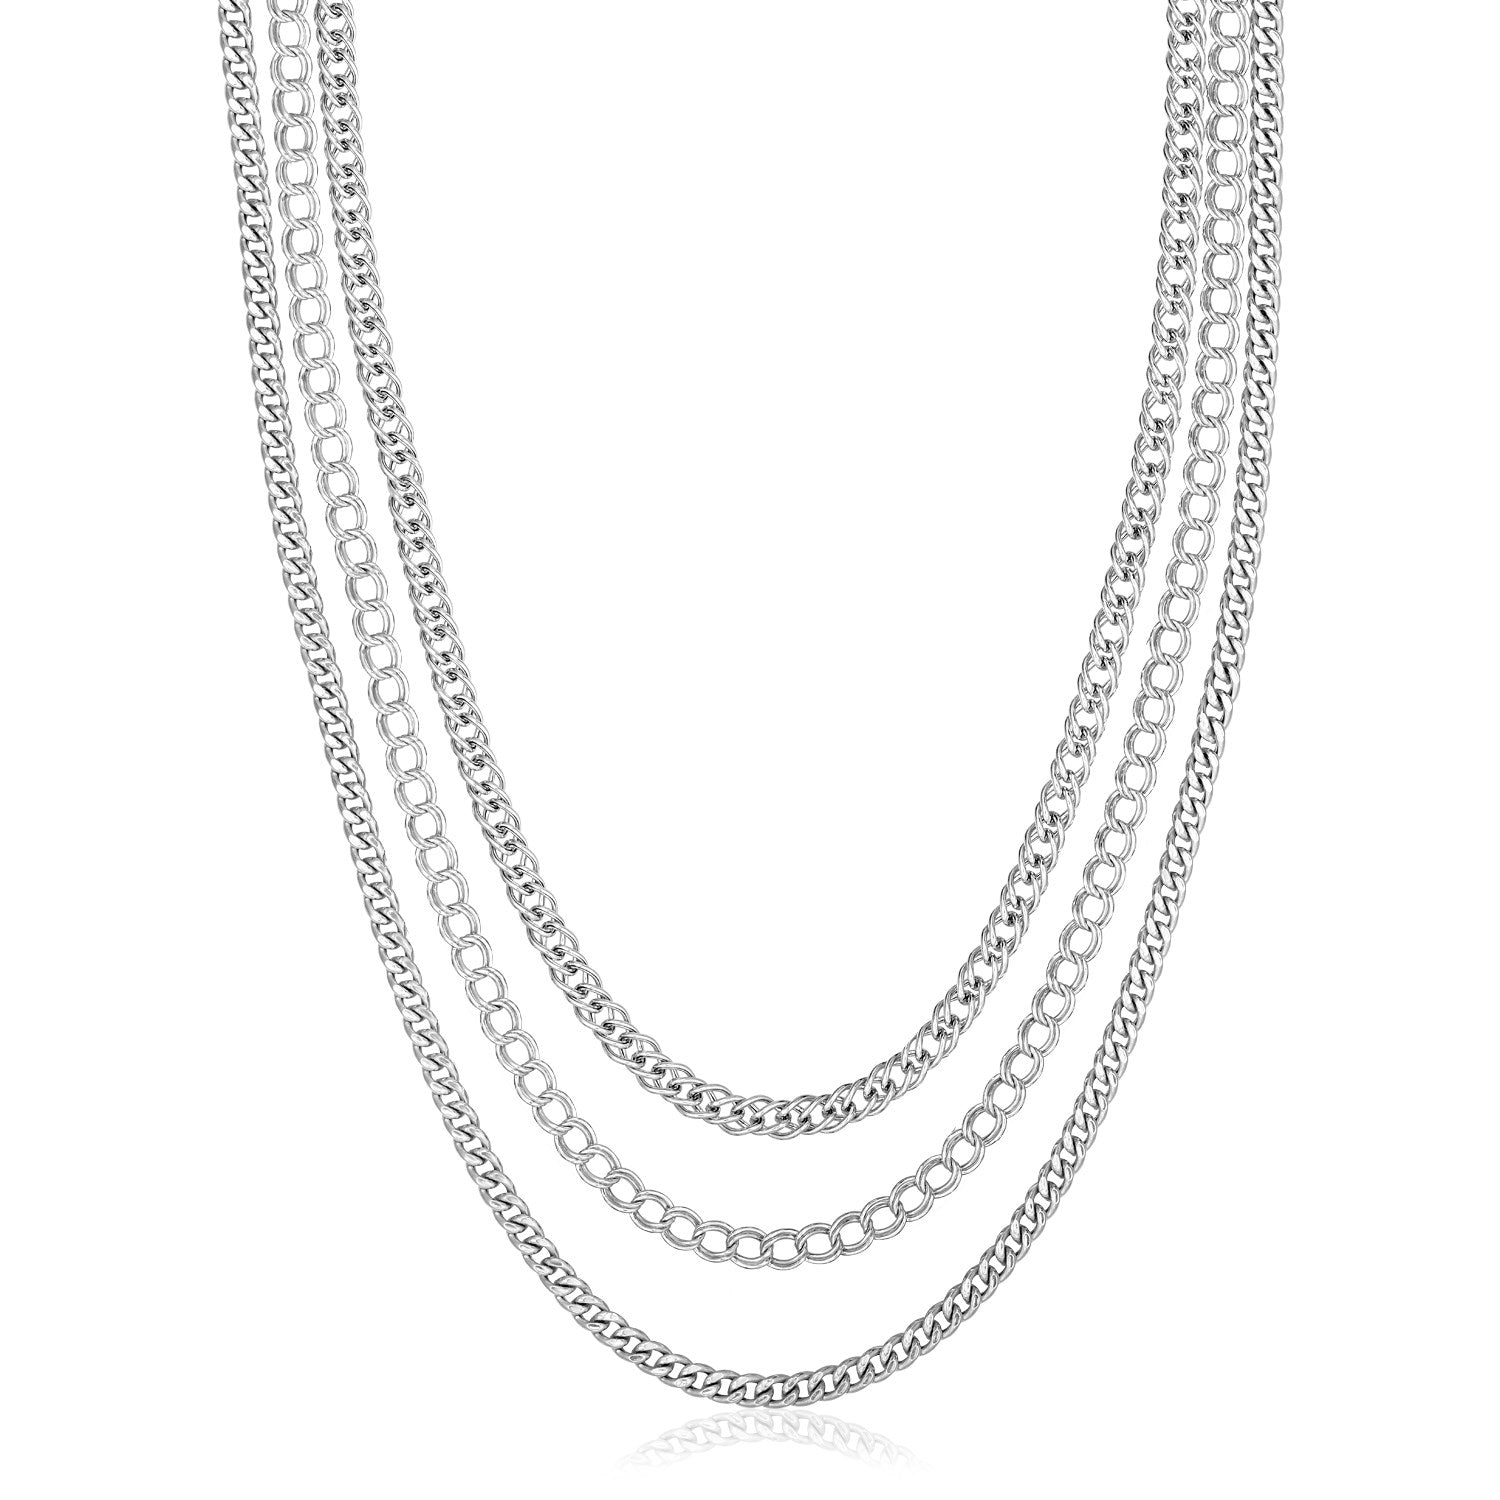 Sterling Silver 18 inch Three Strand Multiple Link Necklace